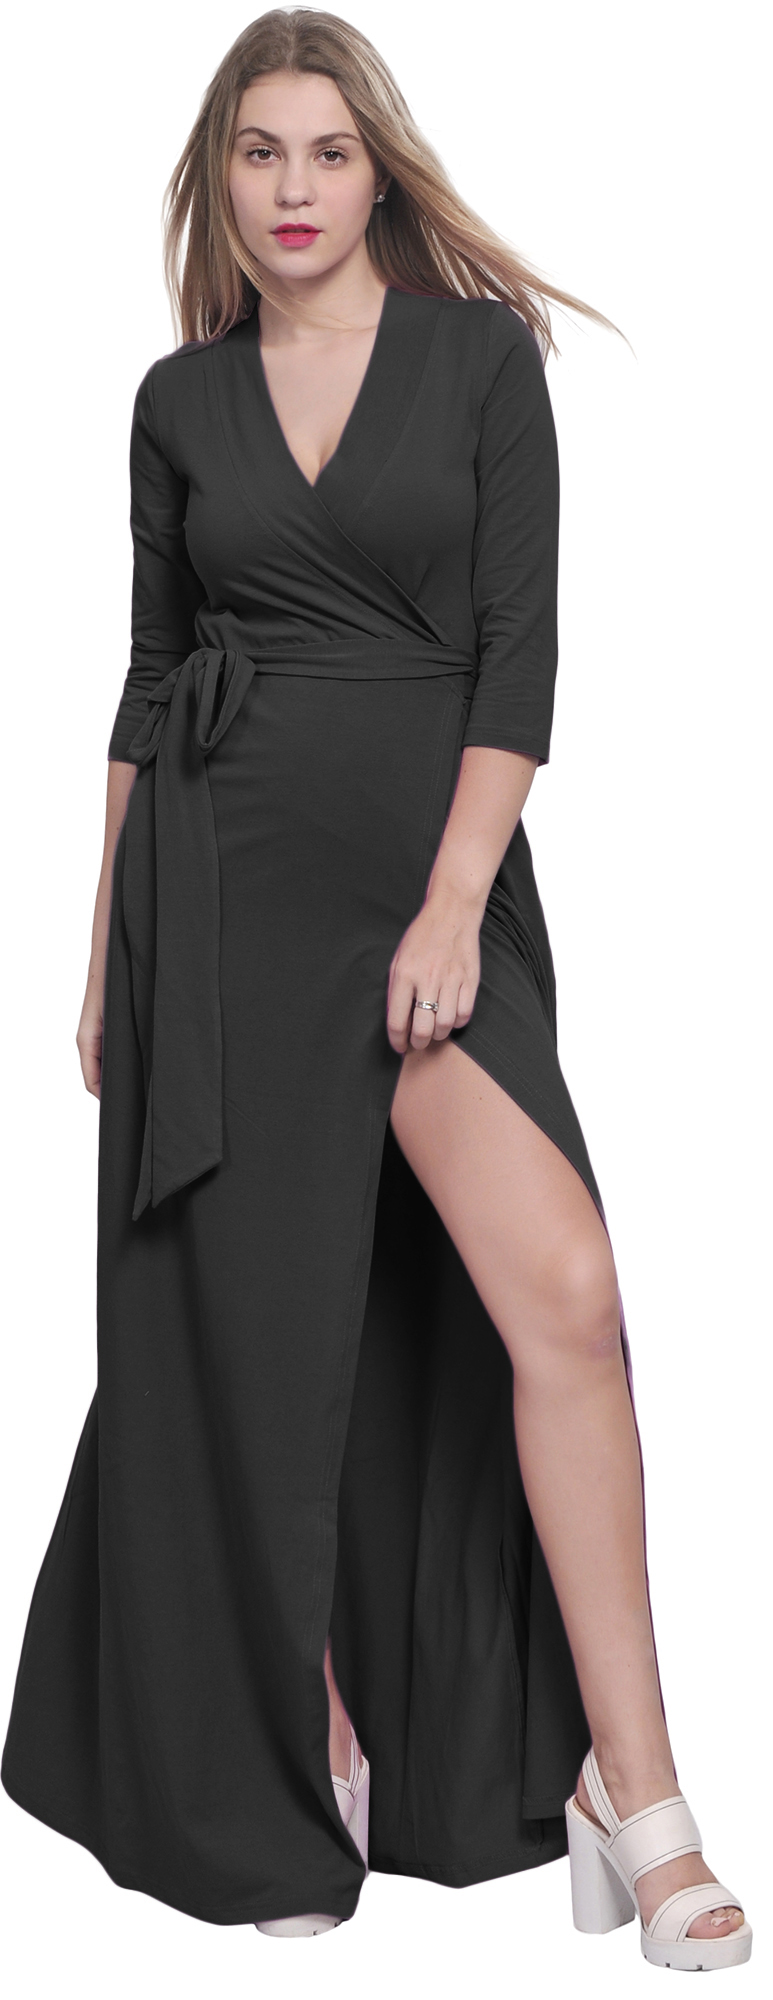 MAXI FULL LENGTH WRAP DRESS LONG SLEEVE CROSSOVER DRESSES CASUAL ...